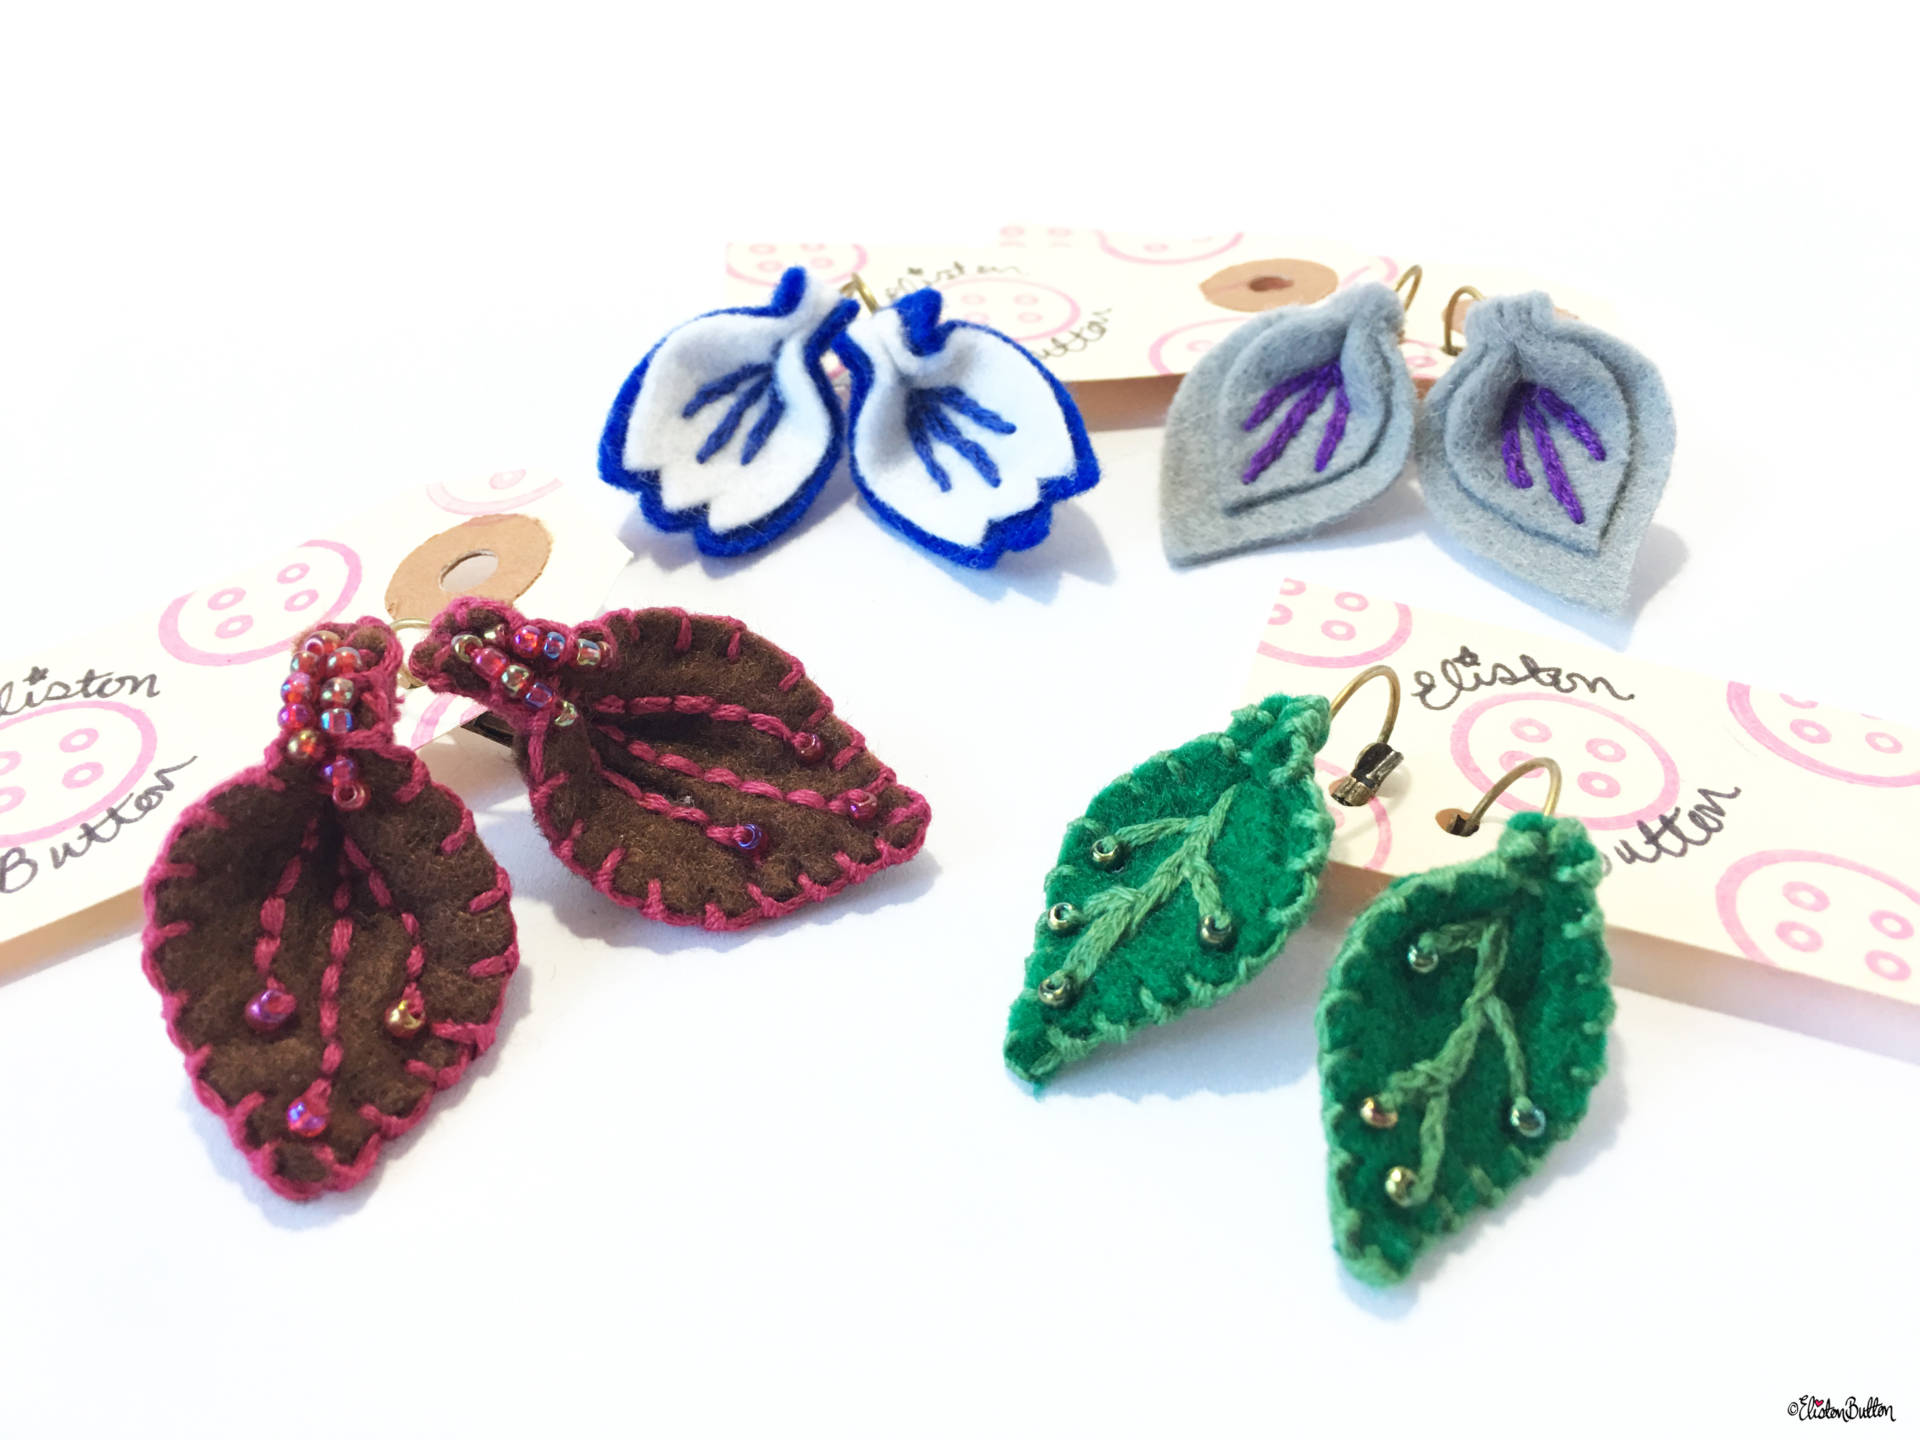 Embroidered Felt and Beaded Handmade Earrings by Eliston Button - Christmas Gift Guide, Last Postage Dates and a Present for You! at www.elistonbutton.com - Eliston Button - That Crafty Kid – Art, Design, Craft & Adventure.